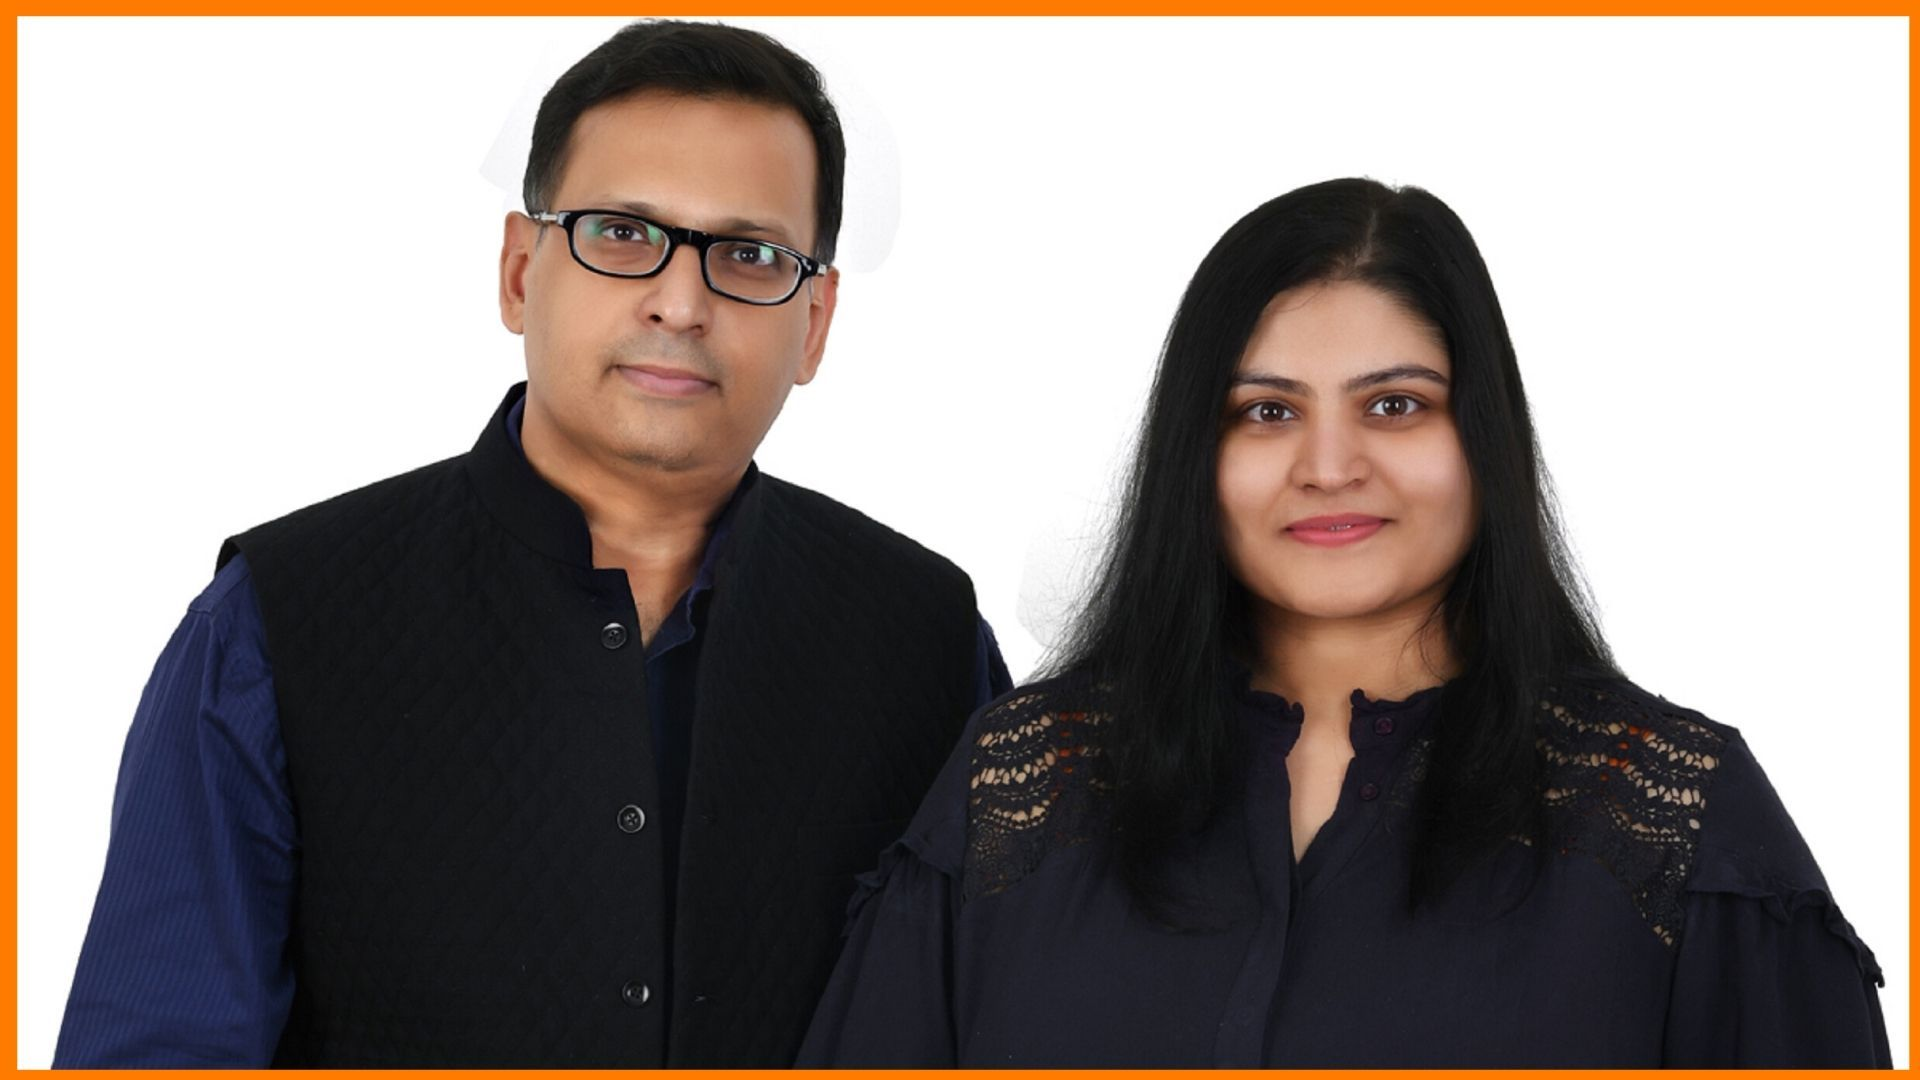 Sachin Kukreja and Nisha S Kukrejah are founders of Luxaire